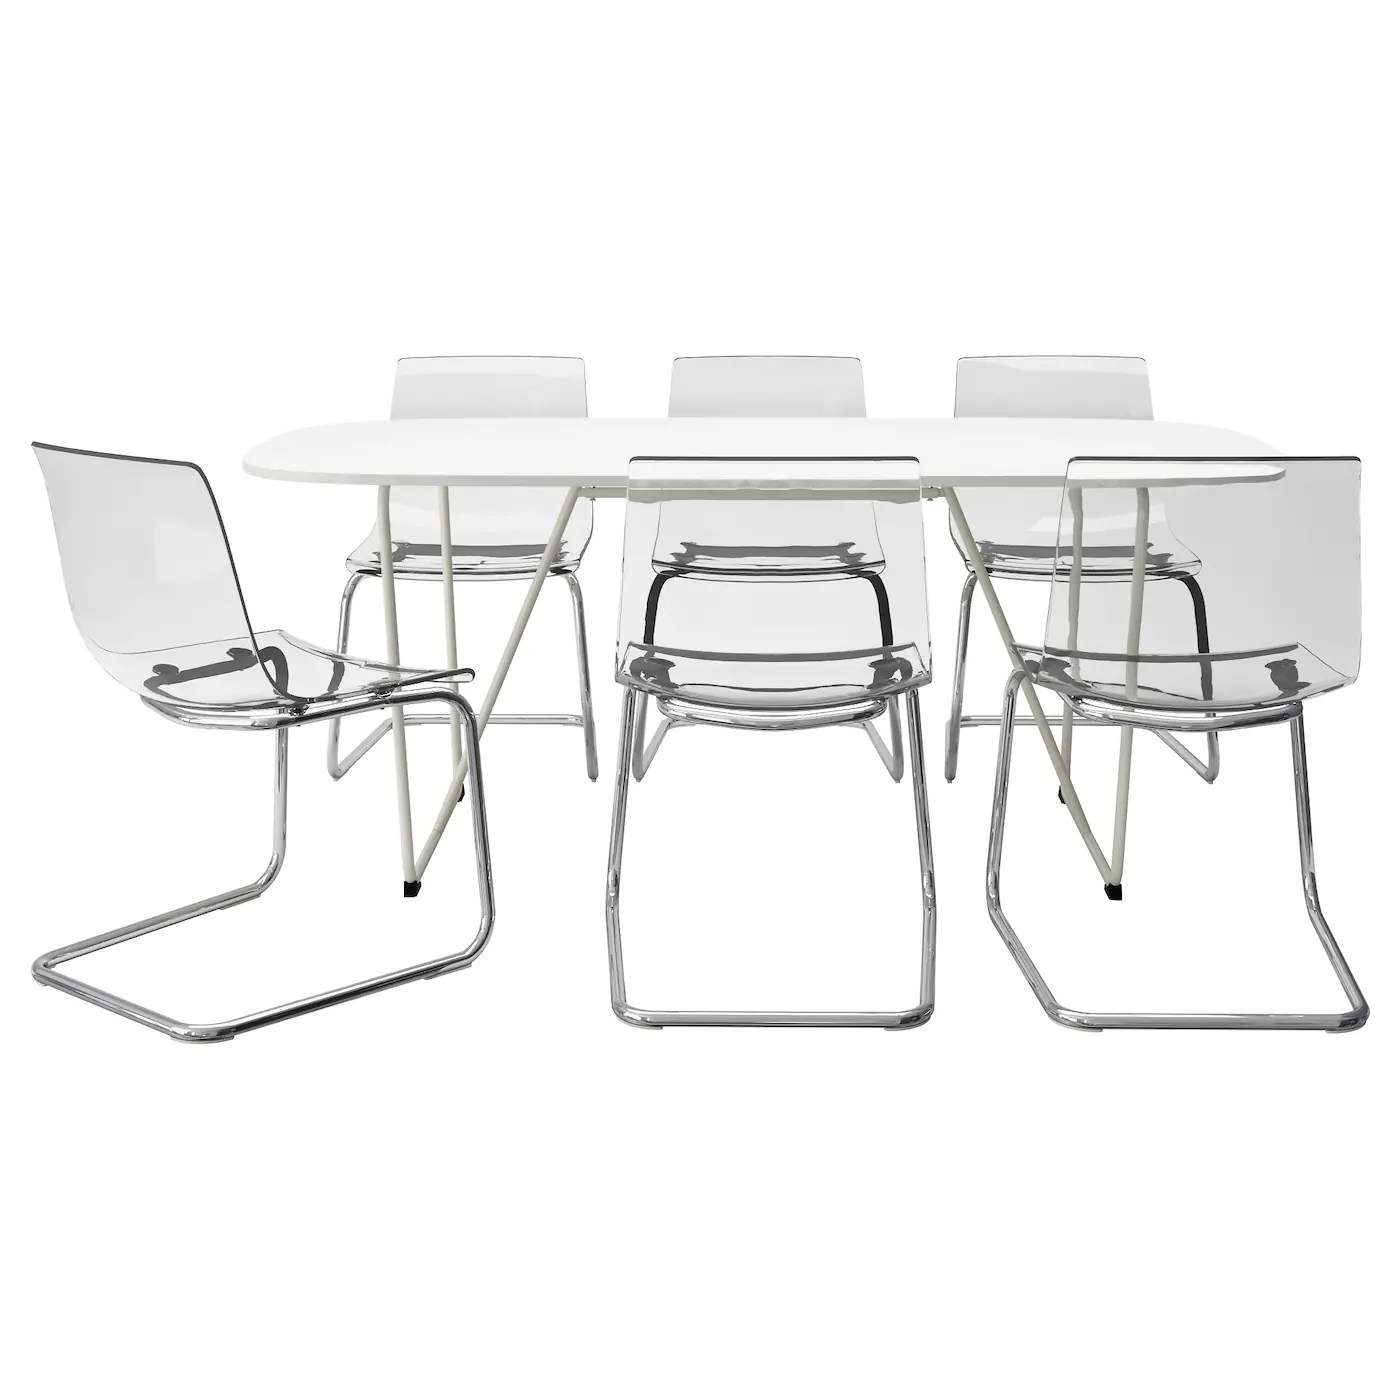 Tobias Chair Ikea Oppeby Backaryd Tobias Table And 6 Chairs White Chrome